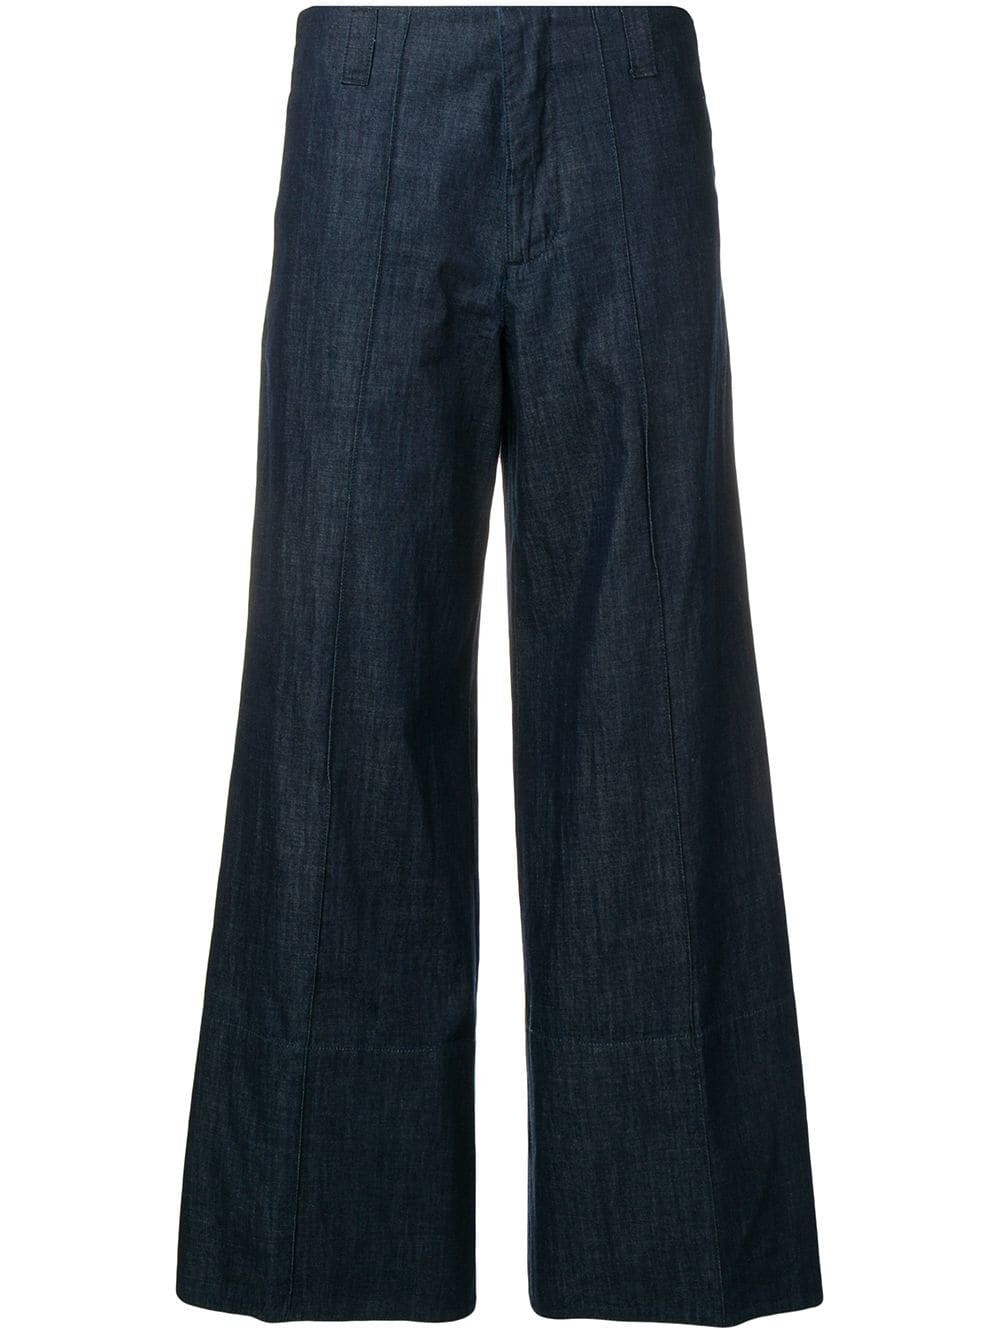 528a2bb09 https://milanstyle.com/products/apiece-apart-straight-cropped-trousers ...